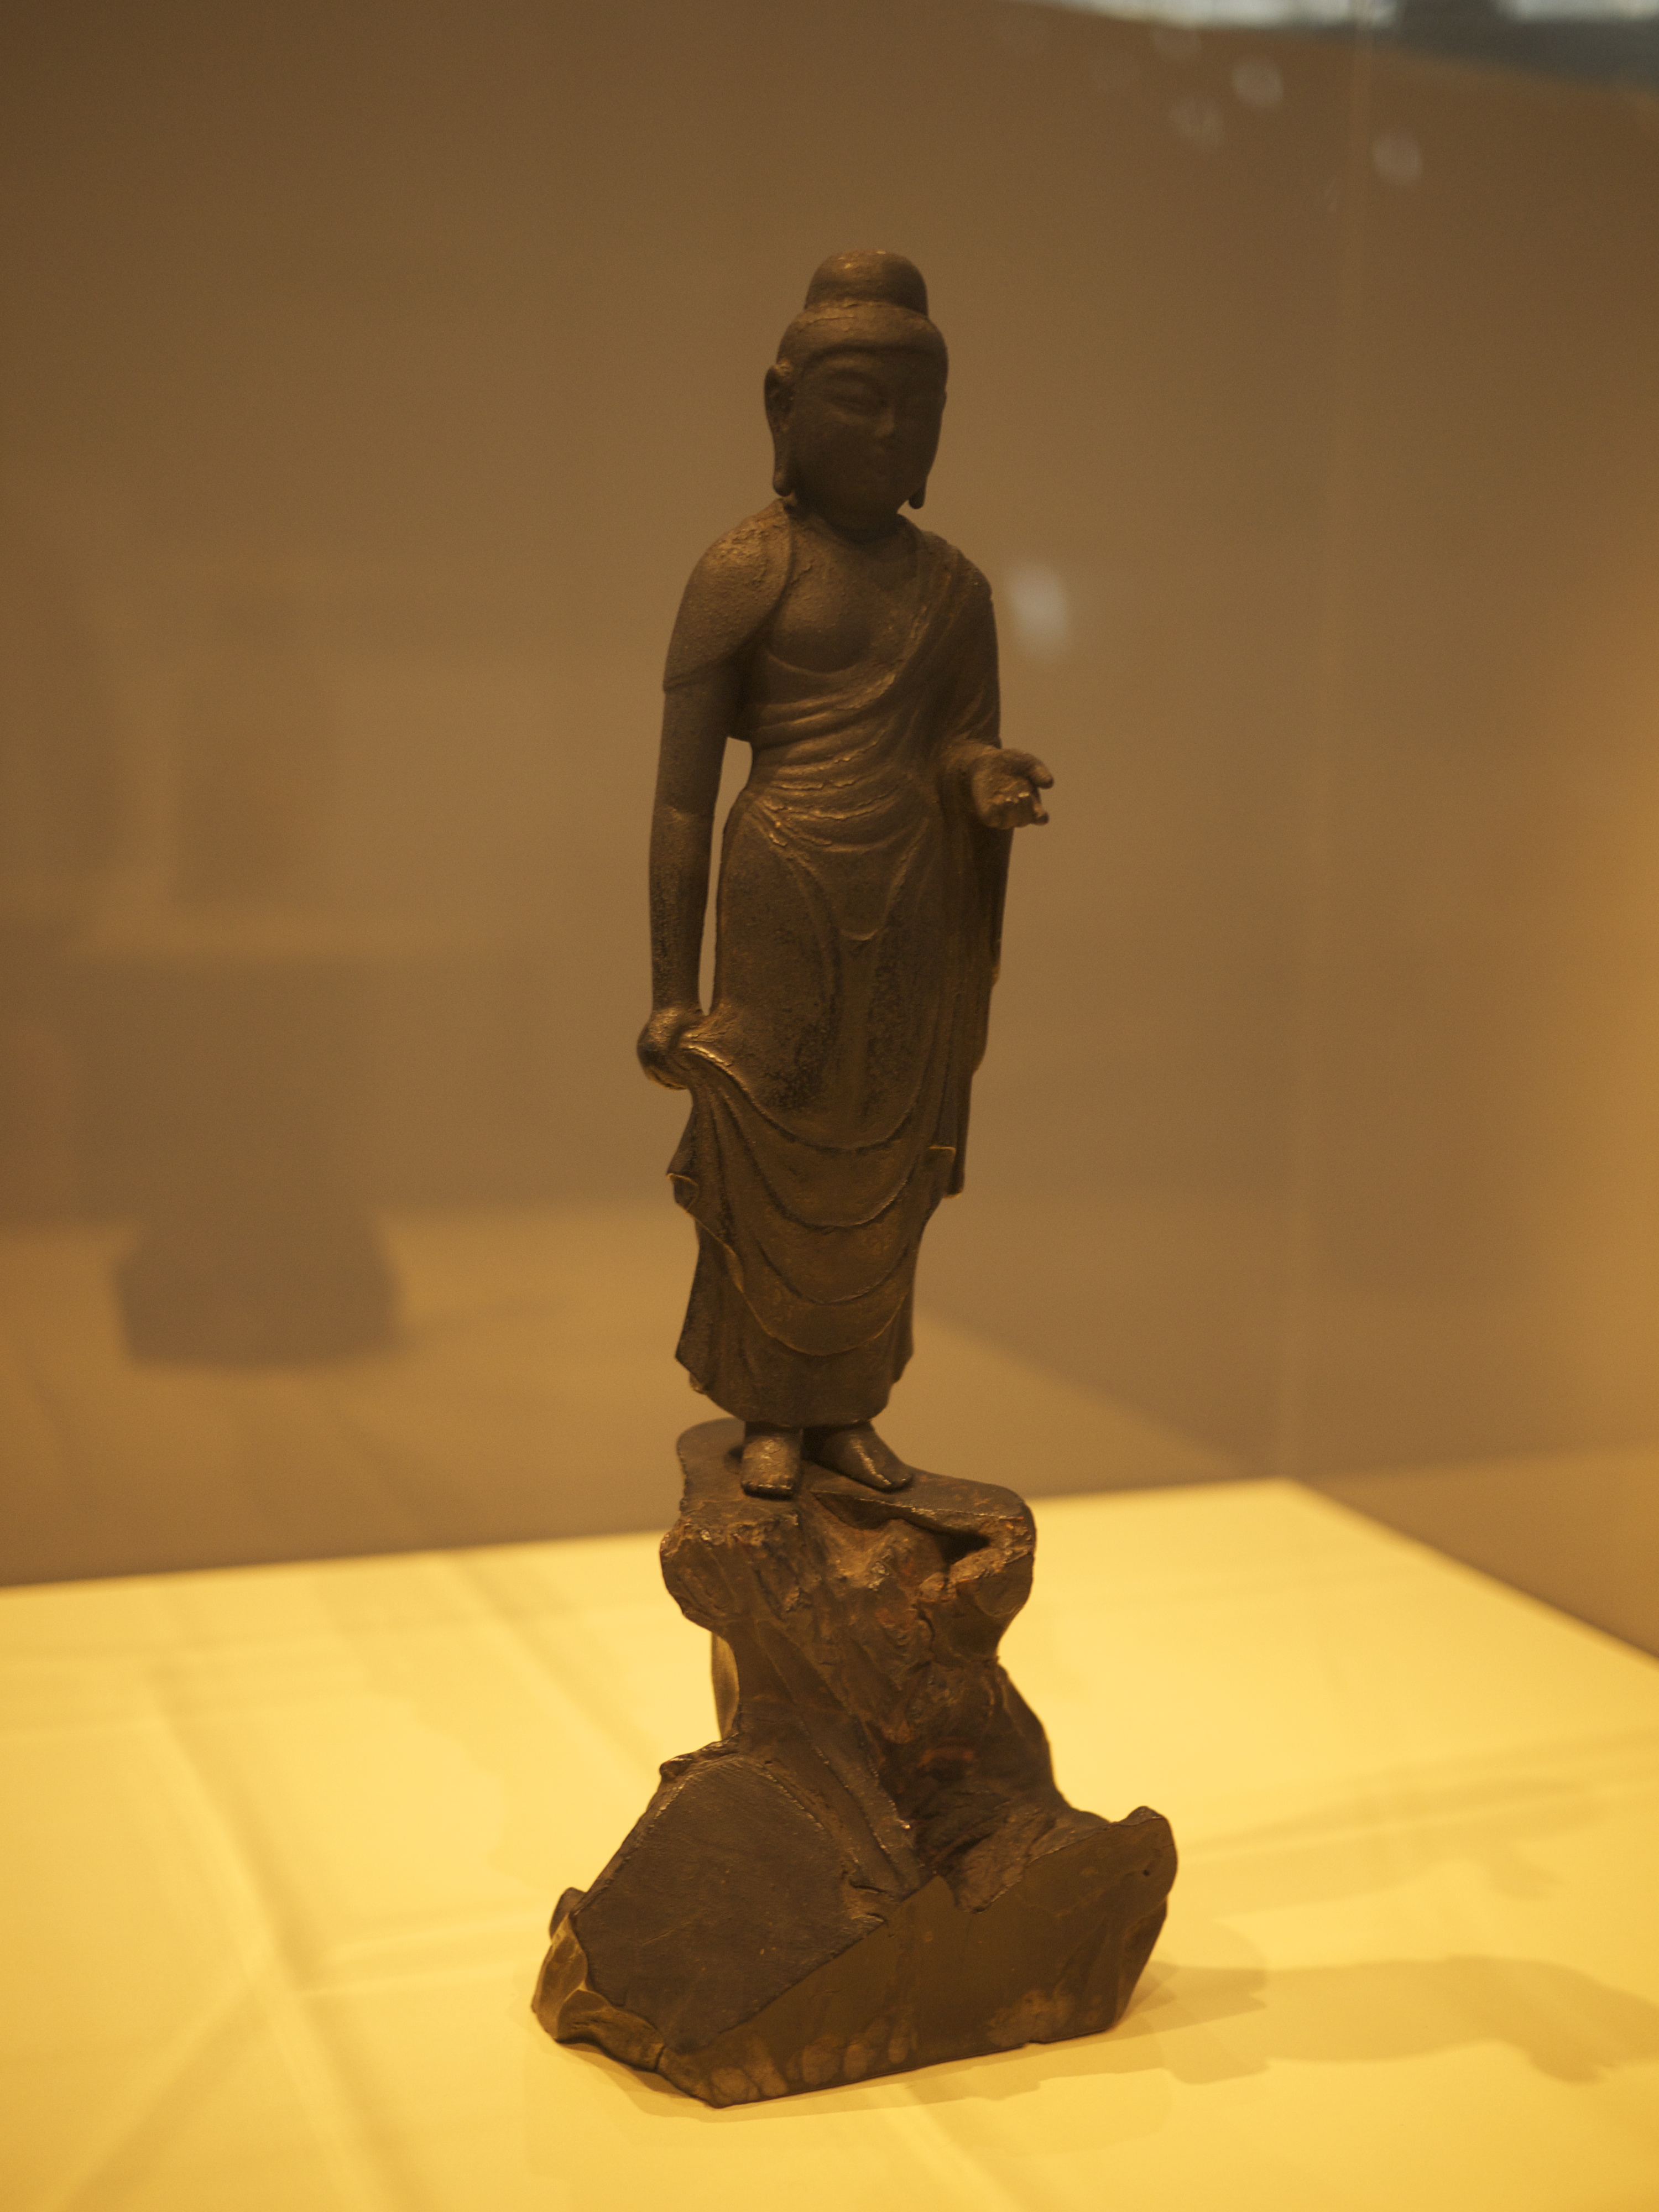 buddhist art in japan Buddhist art in japan buddhist art was introduced to japan along with the buddhist religion in 552 ad almost all the art produced in this suiko period in japan was to do with the new religion.